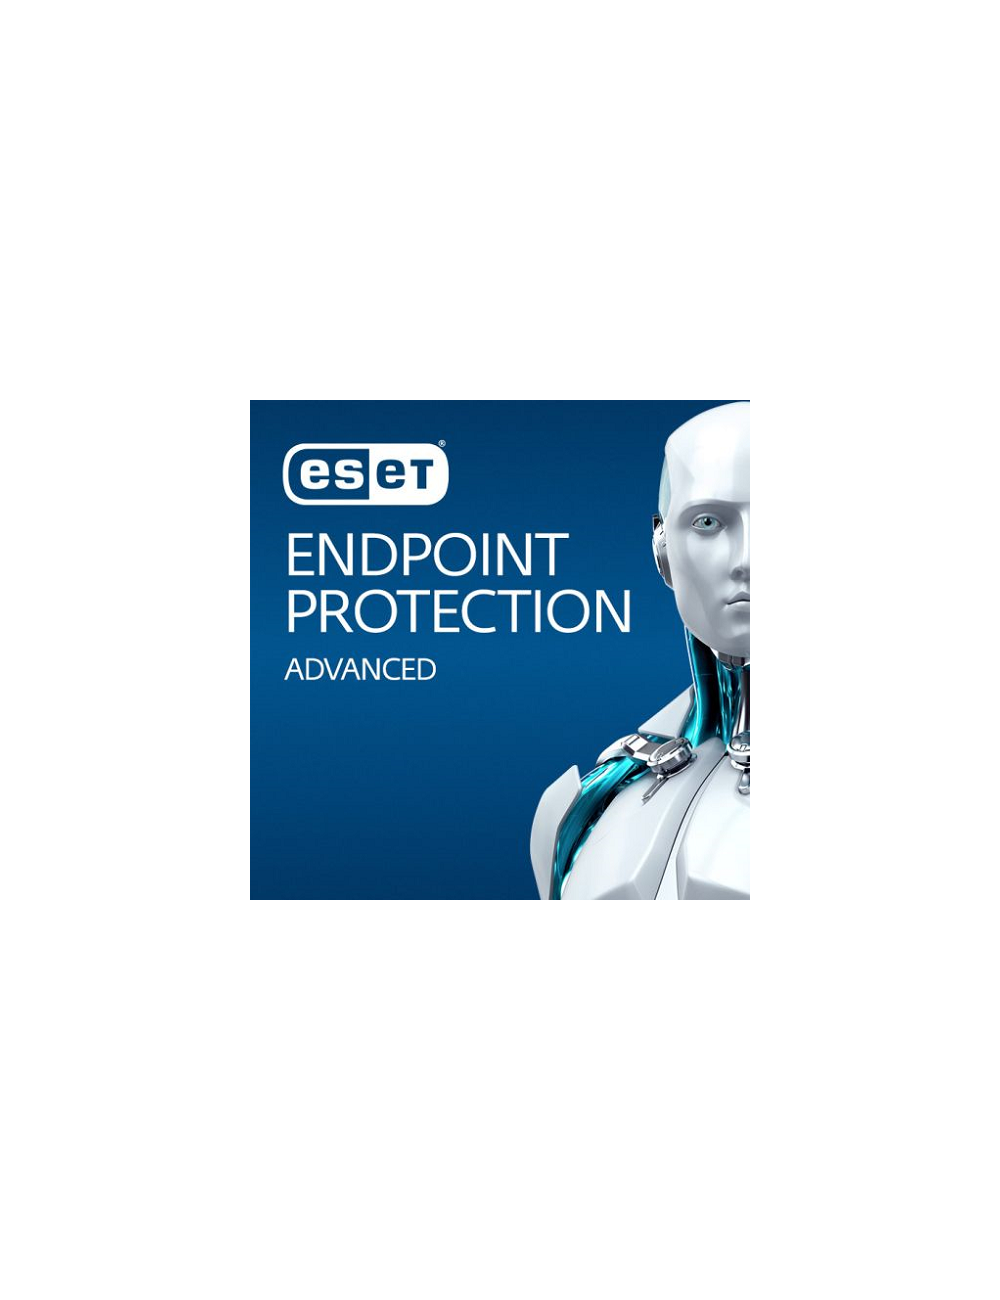 ESET Endpoint Protection Advanced (500-999 devices) -  License 1 device - 1 year